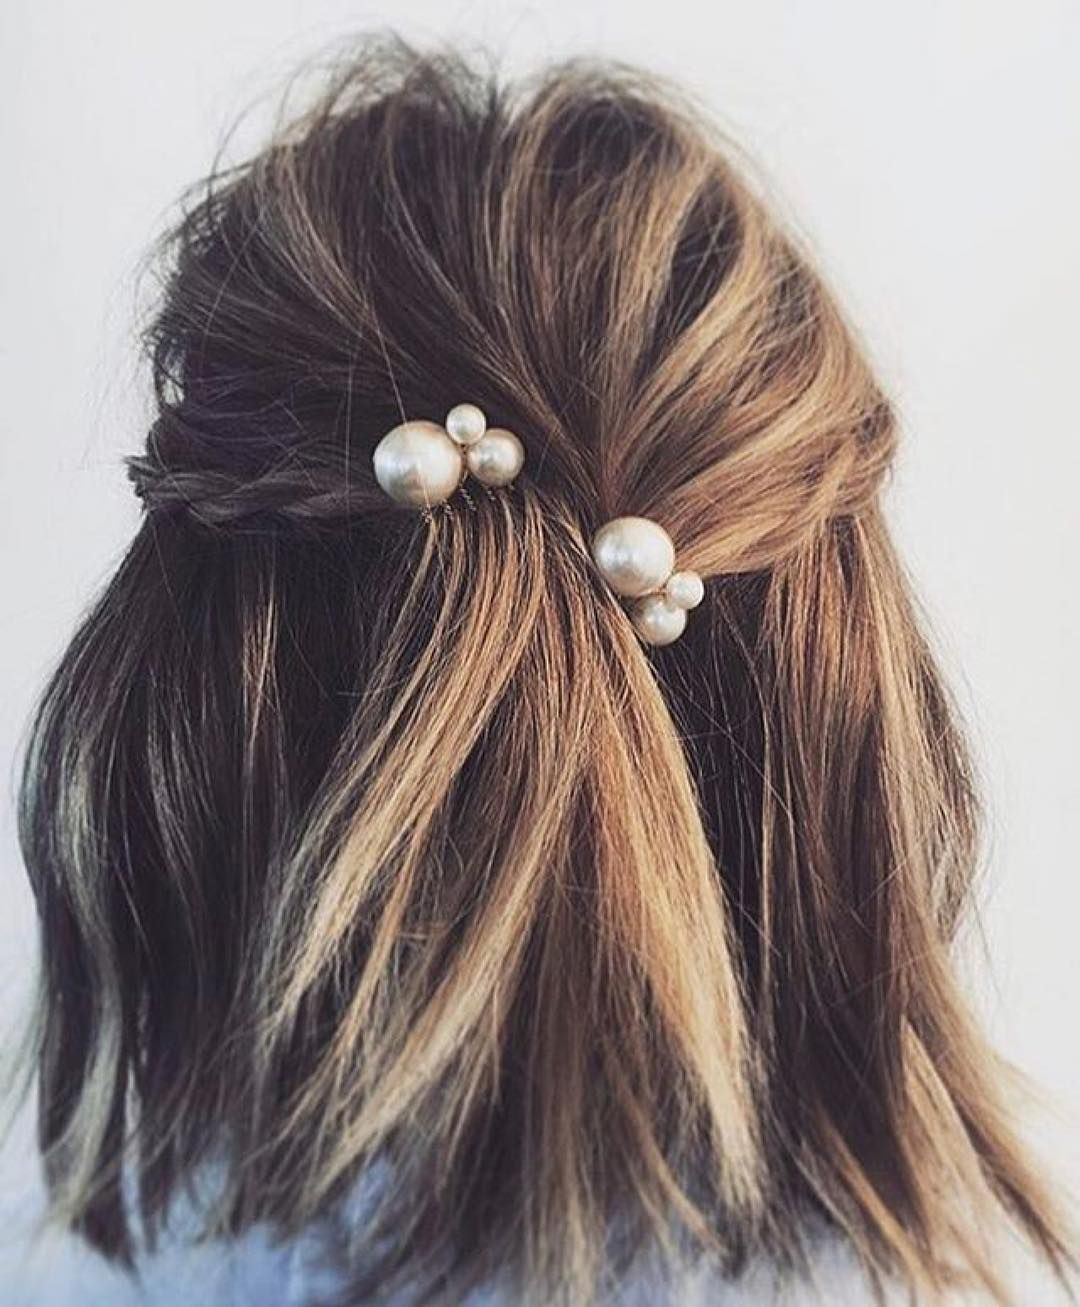 Pin by lib friedrich on hair pinterest instagram hair style and